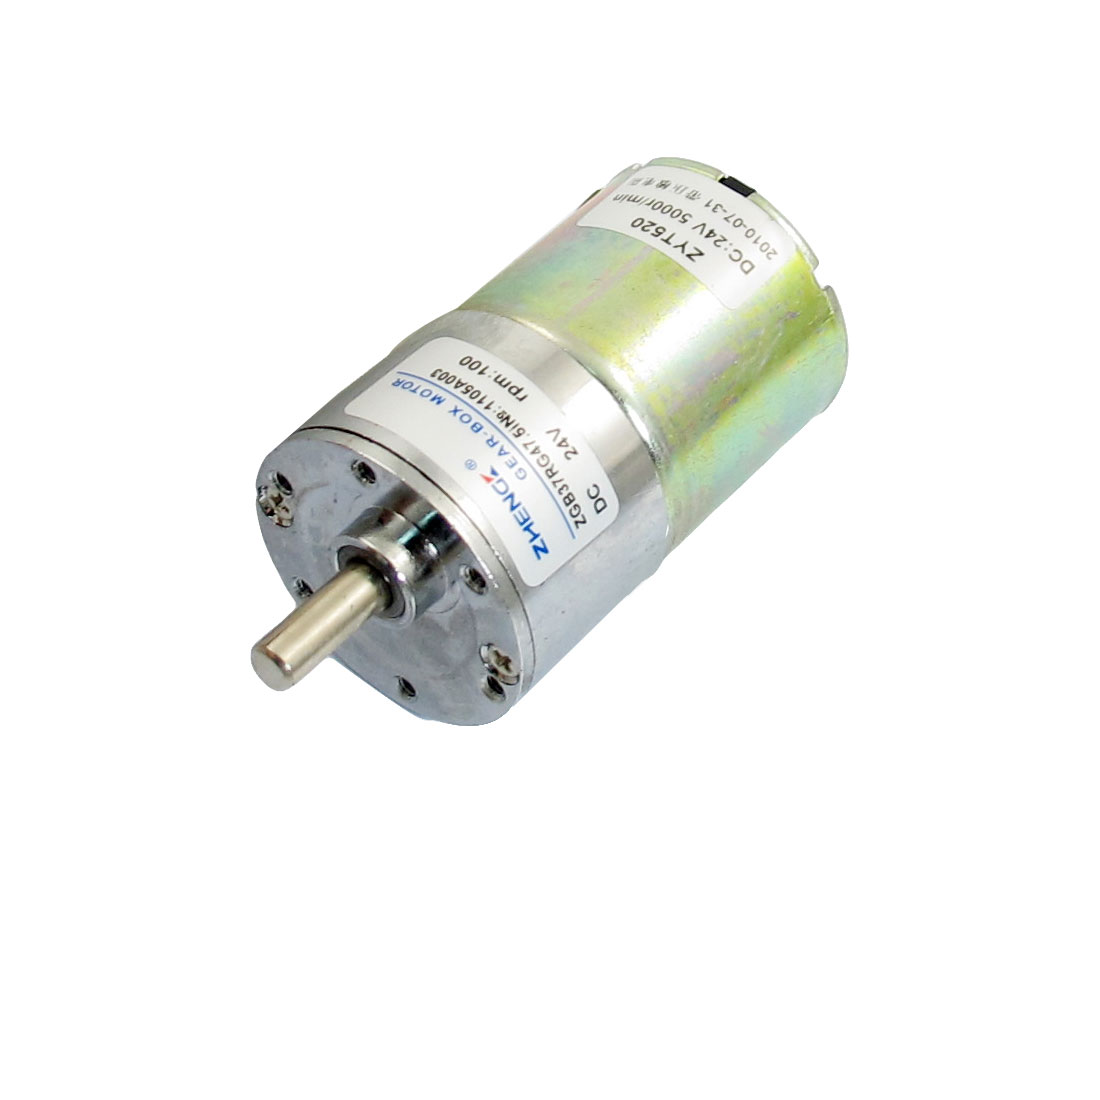 37mm Diameter Grill Electronic Parts Geared Motor 100RPM 24VDC